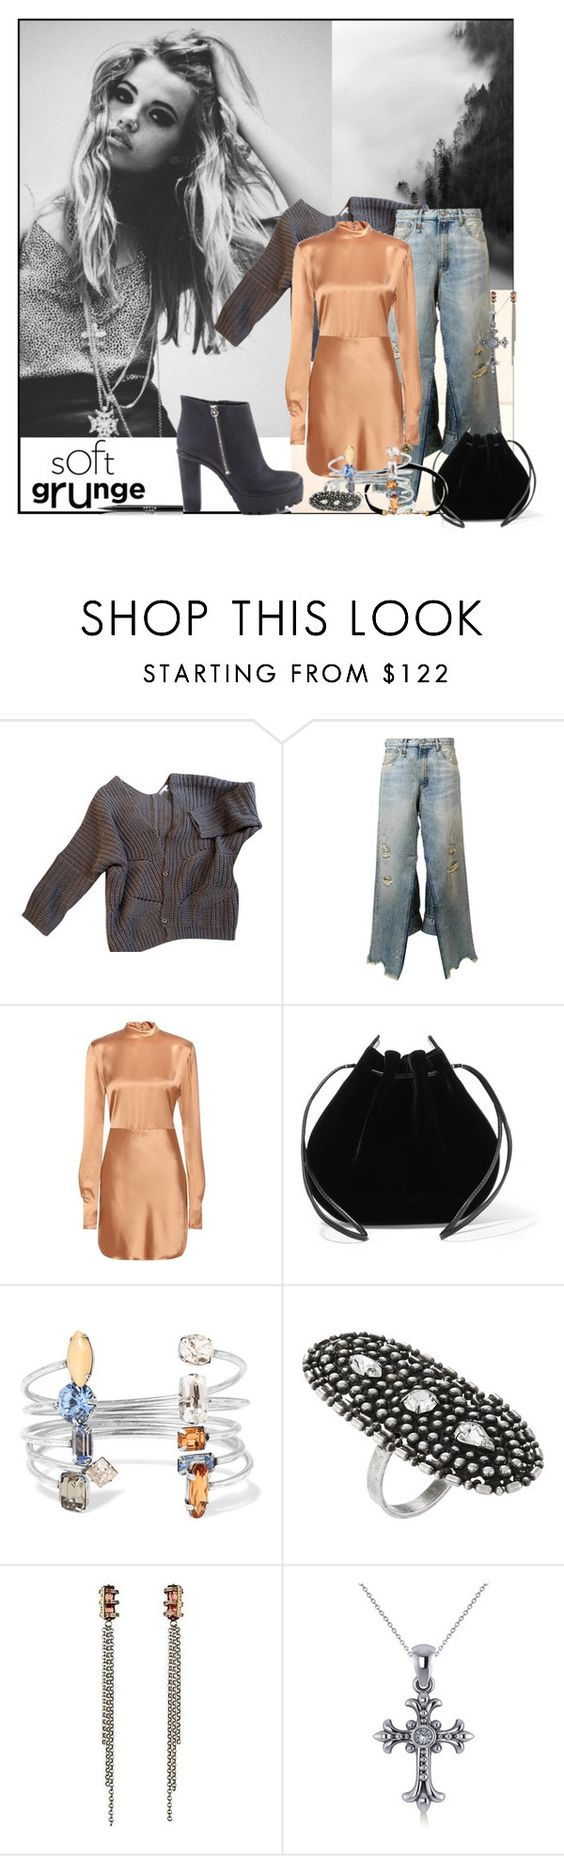 """""""The Grunge effect..."""" by sue-mes ❤ liked on Polyvore featuring Maje, R13, Acne Studios, Vanessa Seward, DANNIJO, Allurez and Stila"""